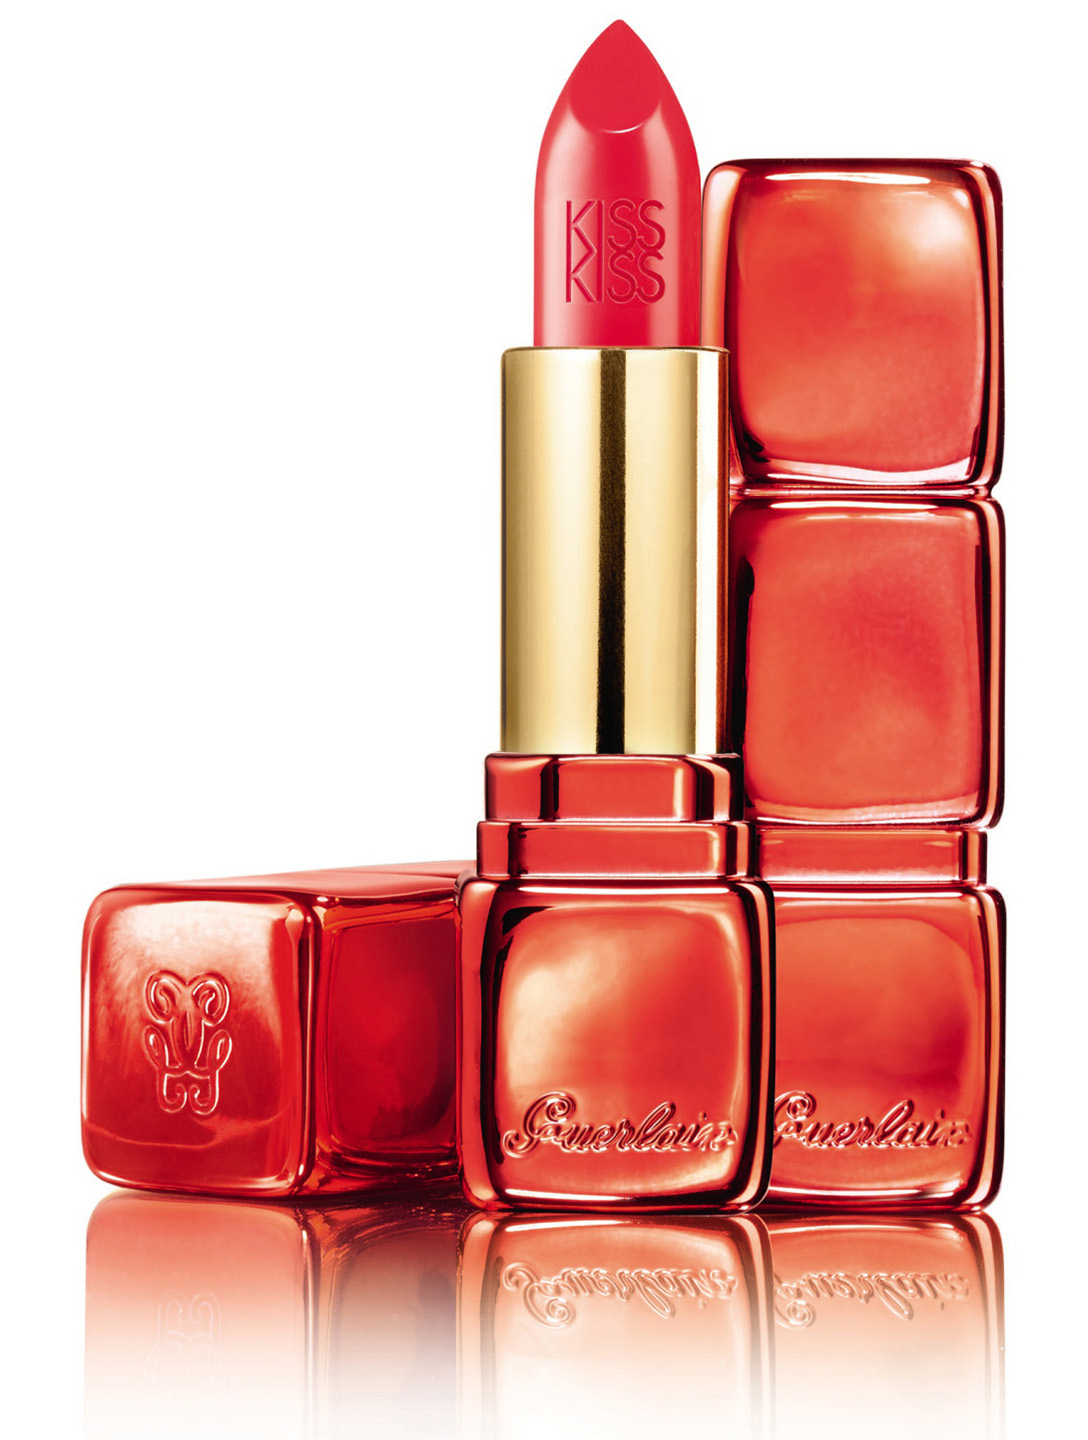 GUERLAIN KissKiss Le Rouge Lipstick  - Chinese New Year Limited Edition Beauty Red